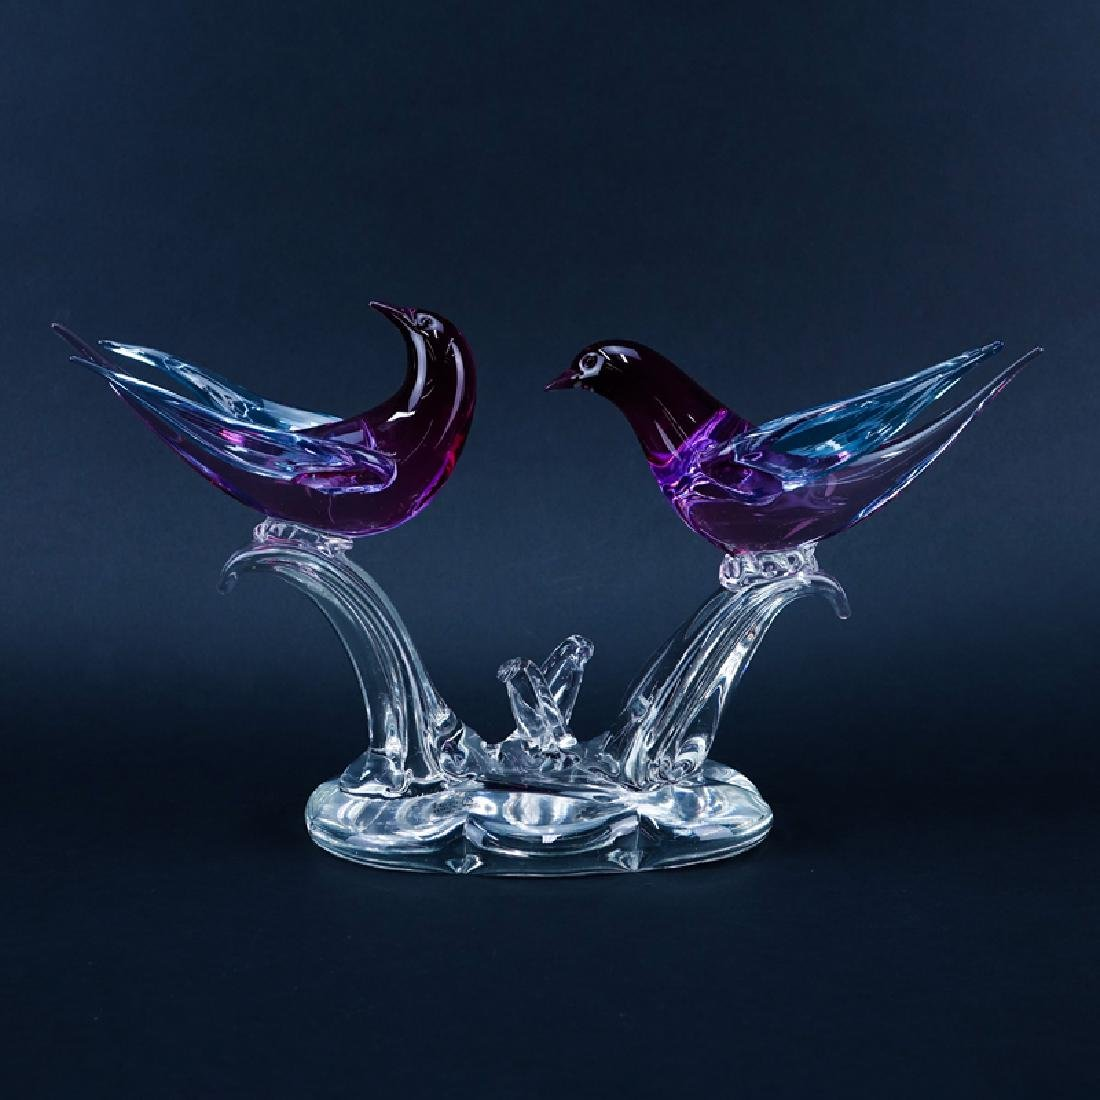 Formia Vetri di Murano Art Glass Love Birds Sculpture.